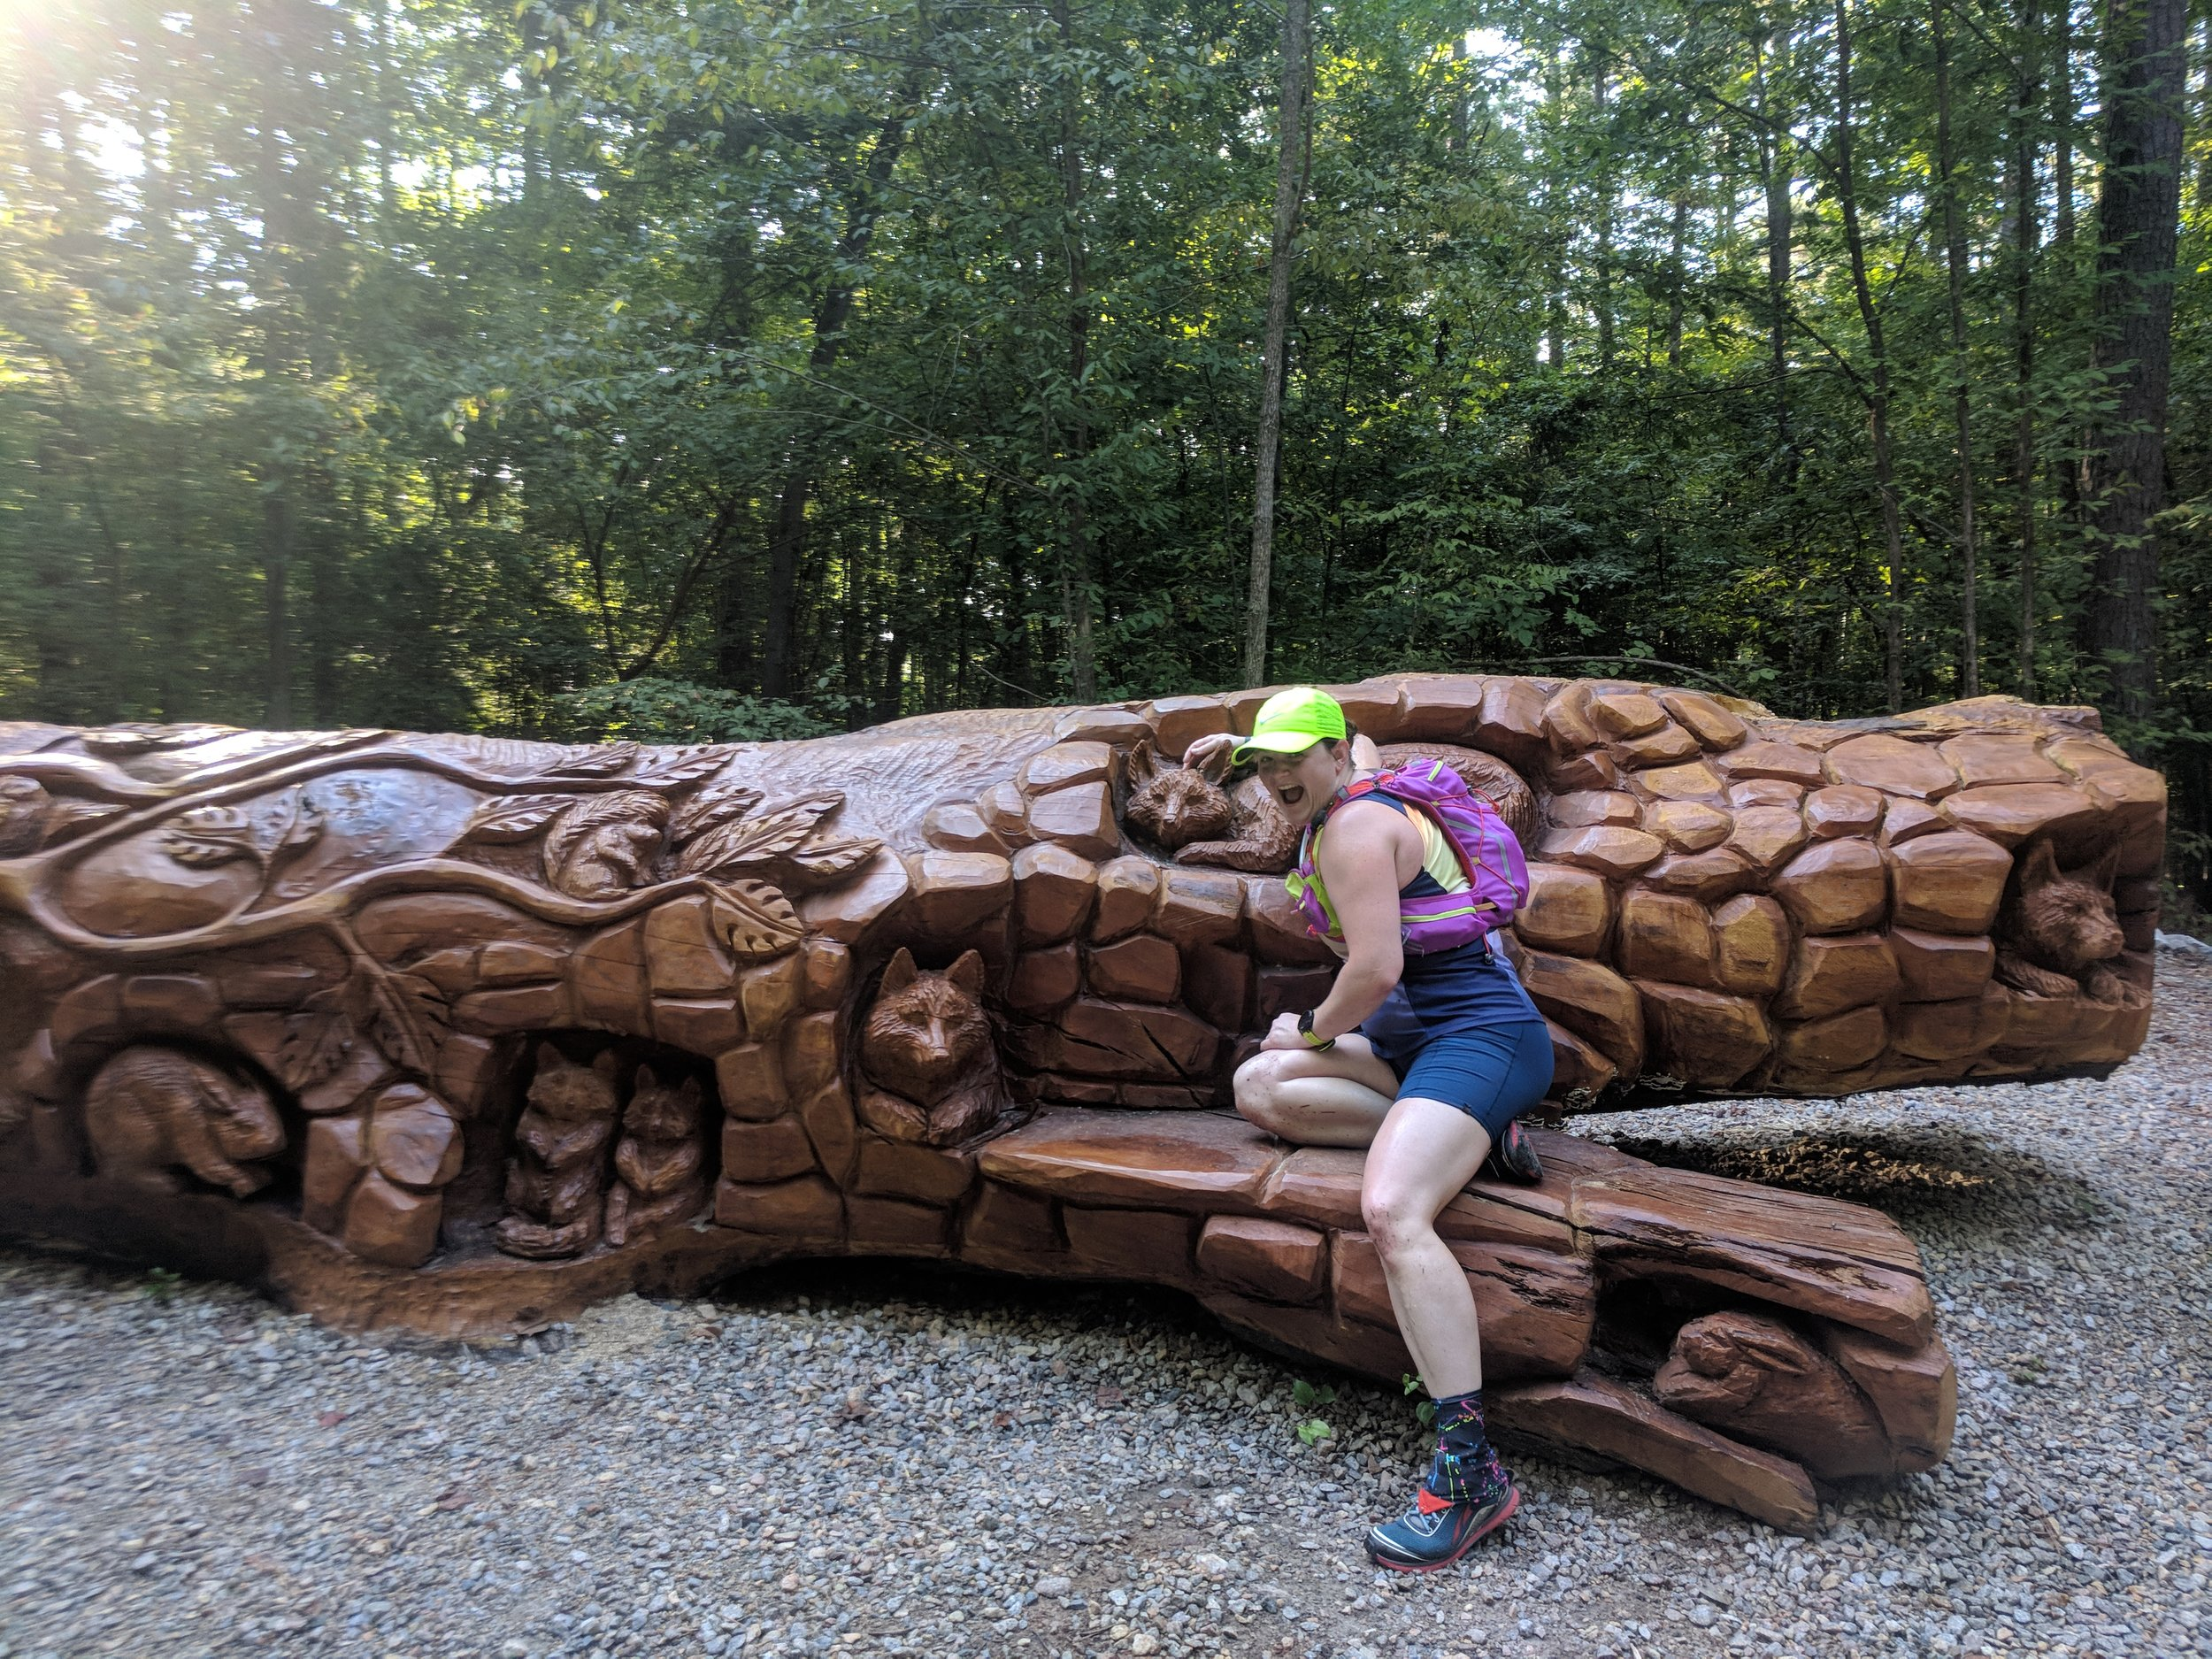 Checking out a carved tree at Umstead State Park on a trail run. Definitely being a dirty hippie hiker runner. Photo Credit: Probably Heather or Jill